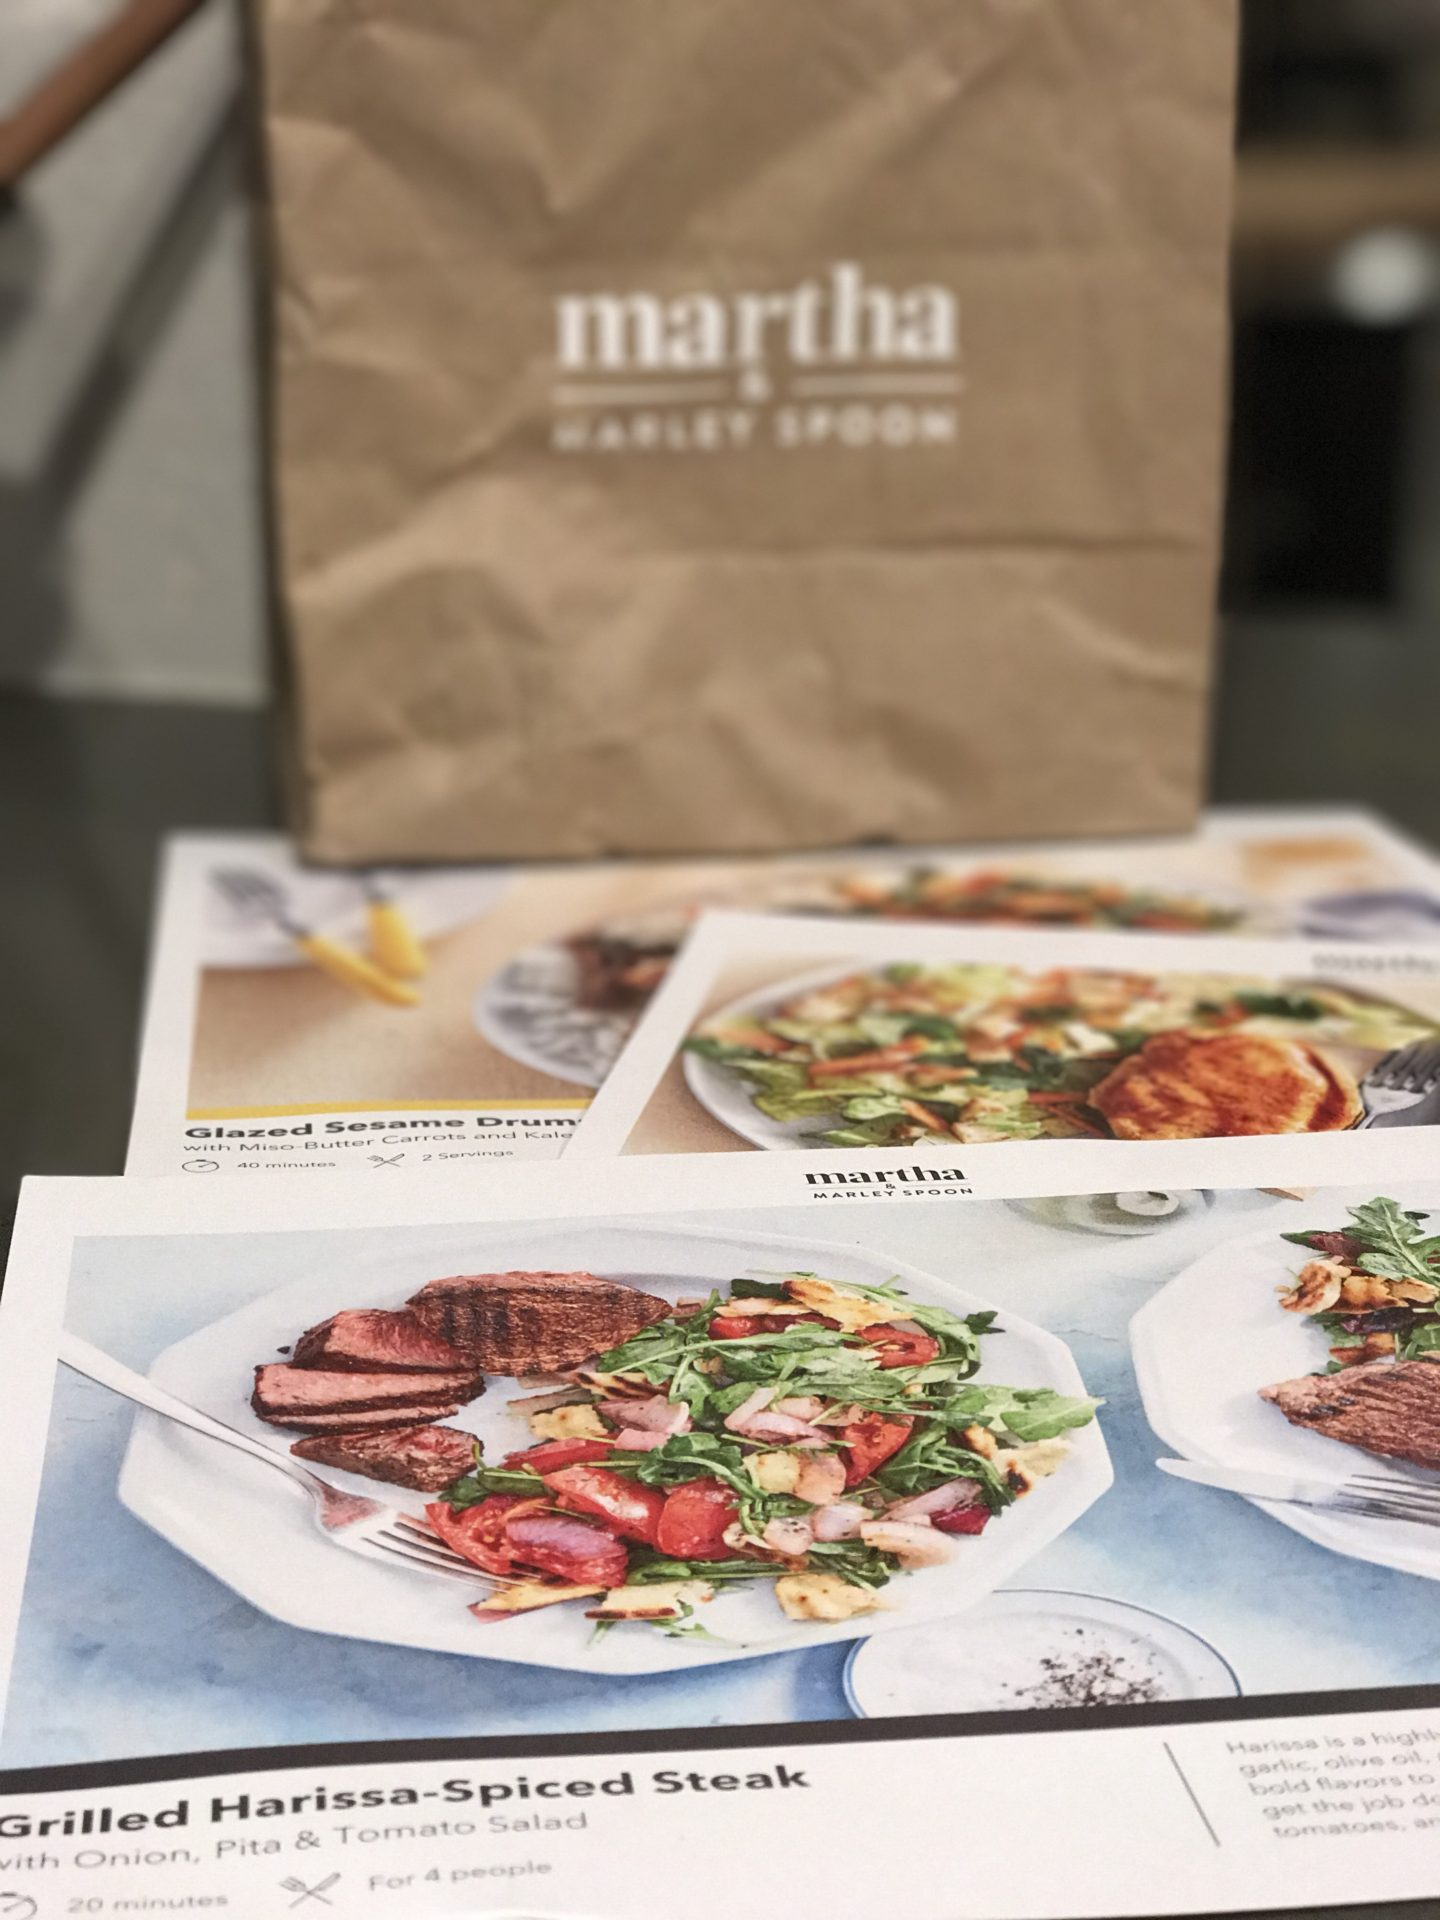 I Tried Martha & Marley Spoon For 2 Weeks – Here's What I Thought